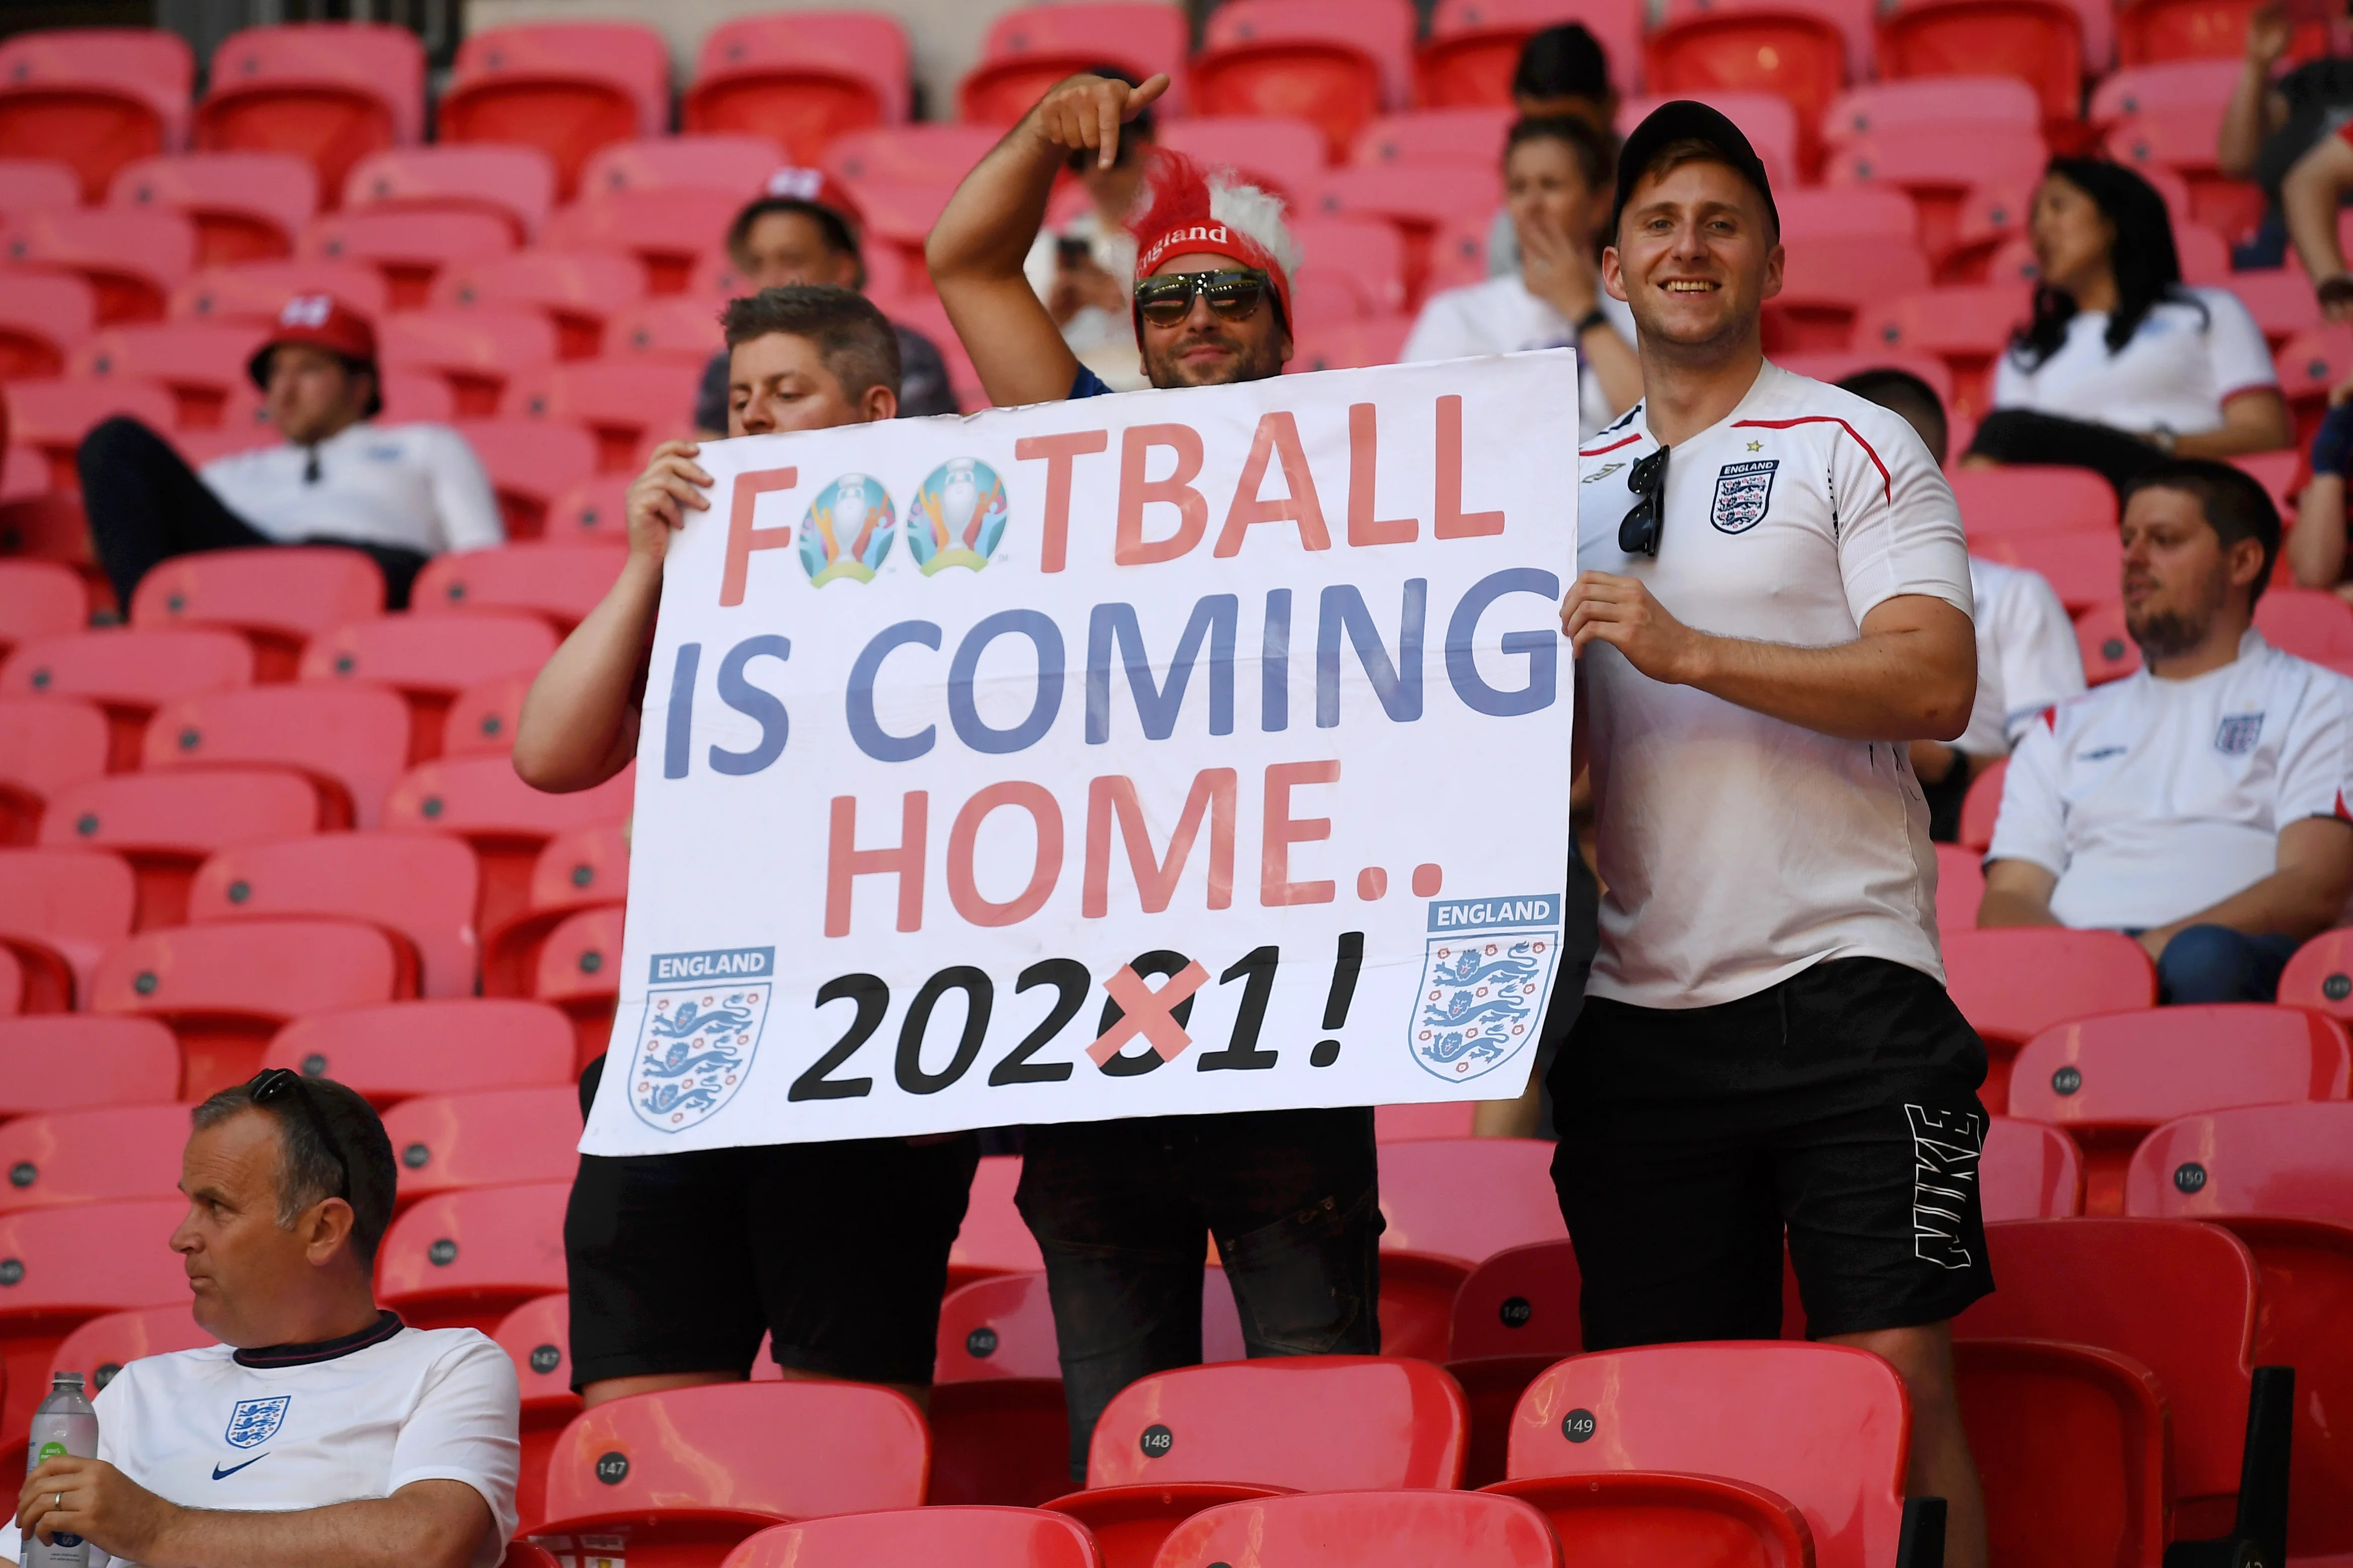 Is it coming home? England fans happy for the final